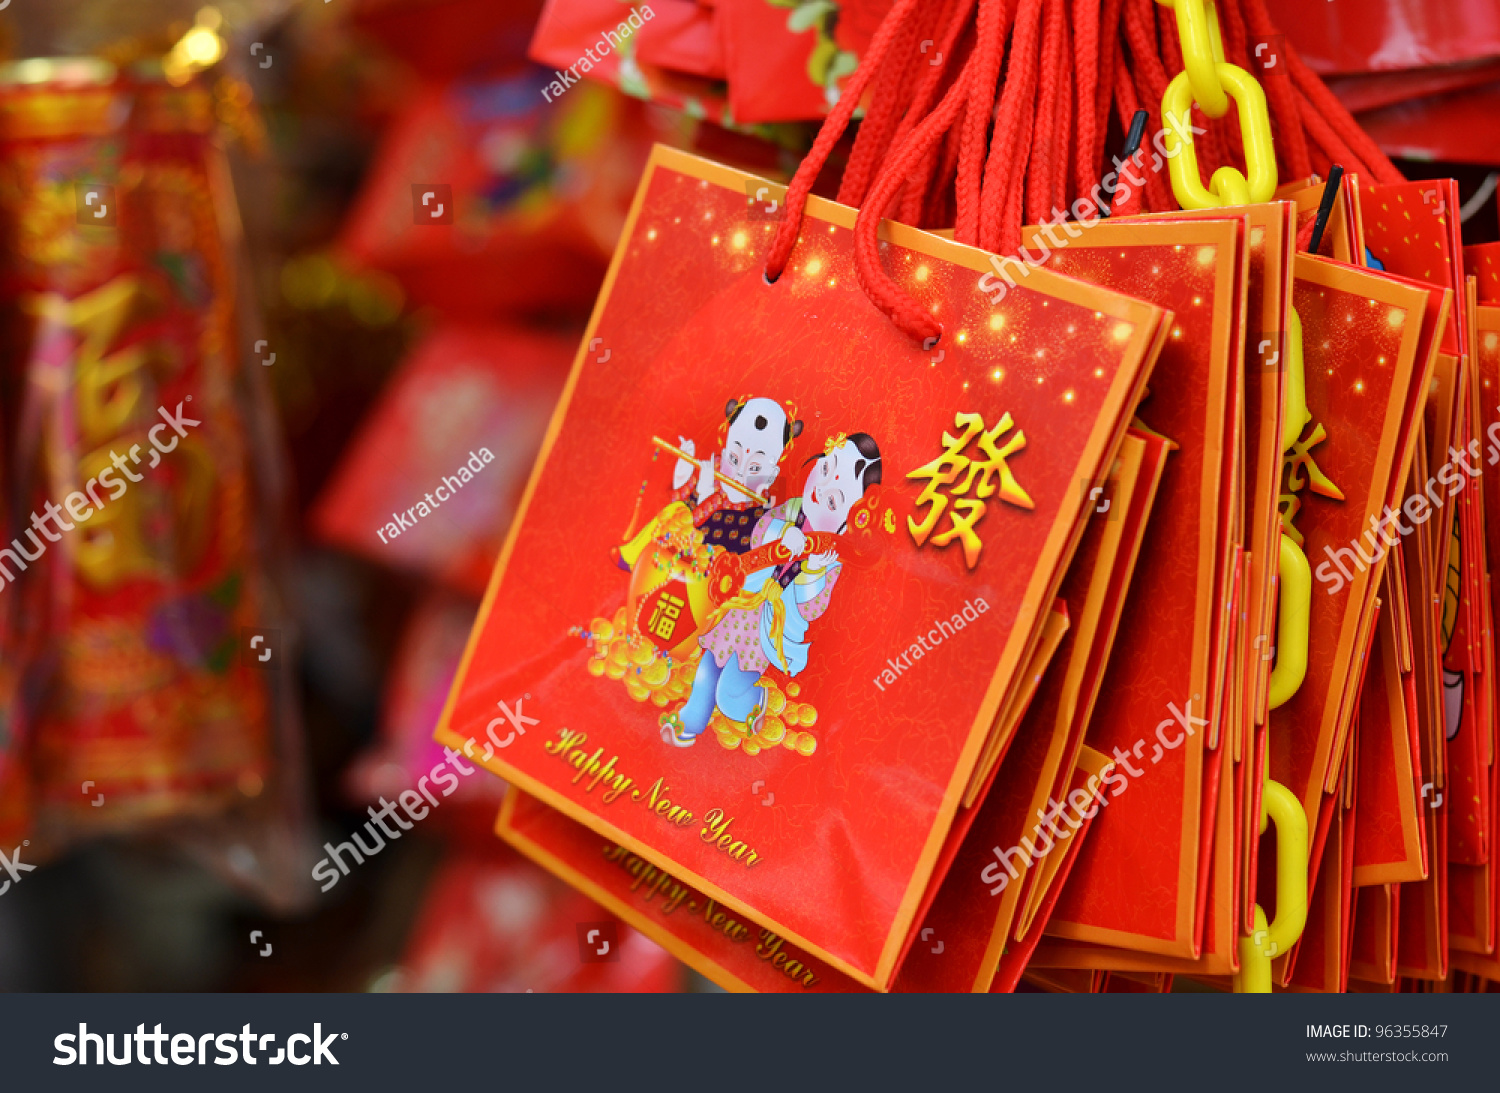 Chinese New Year Gift Bags In The Market Stock Photo ...